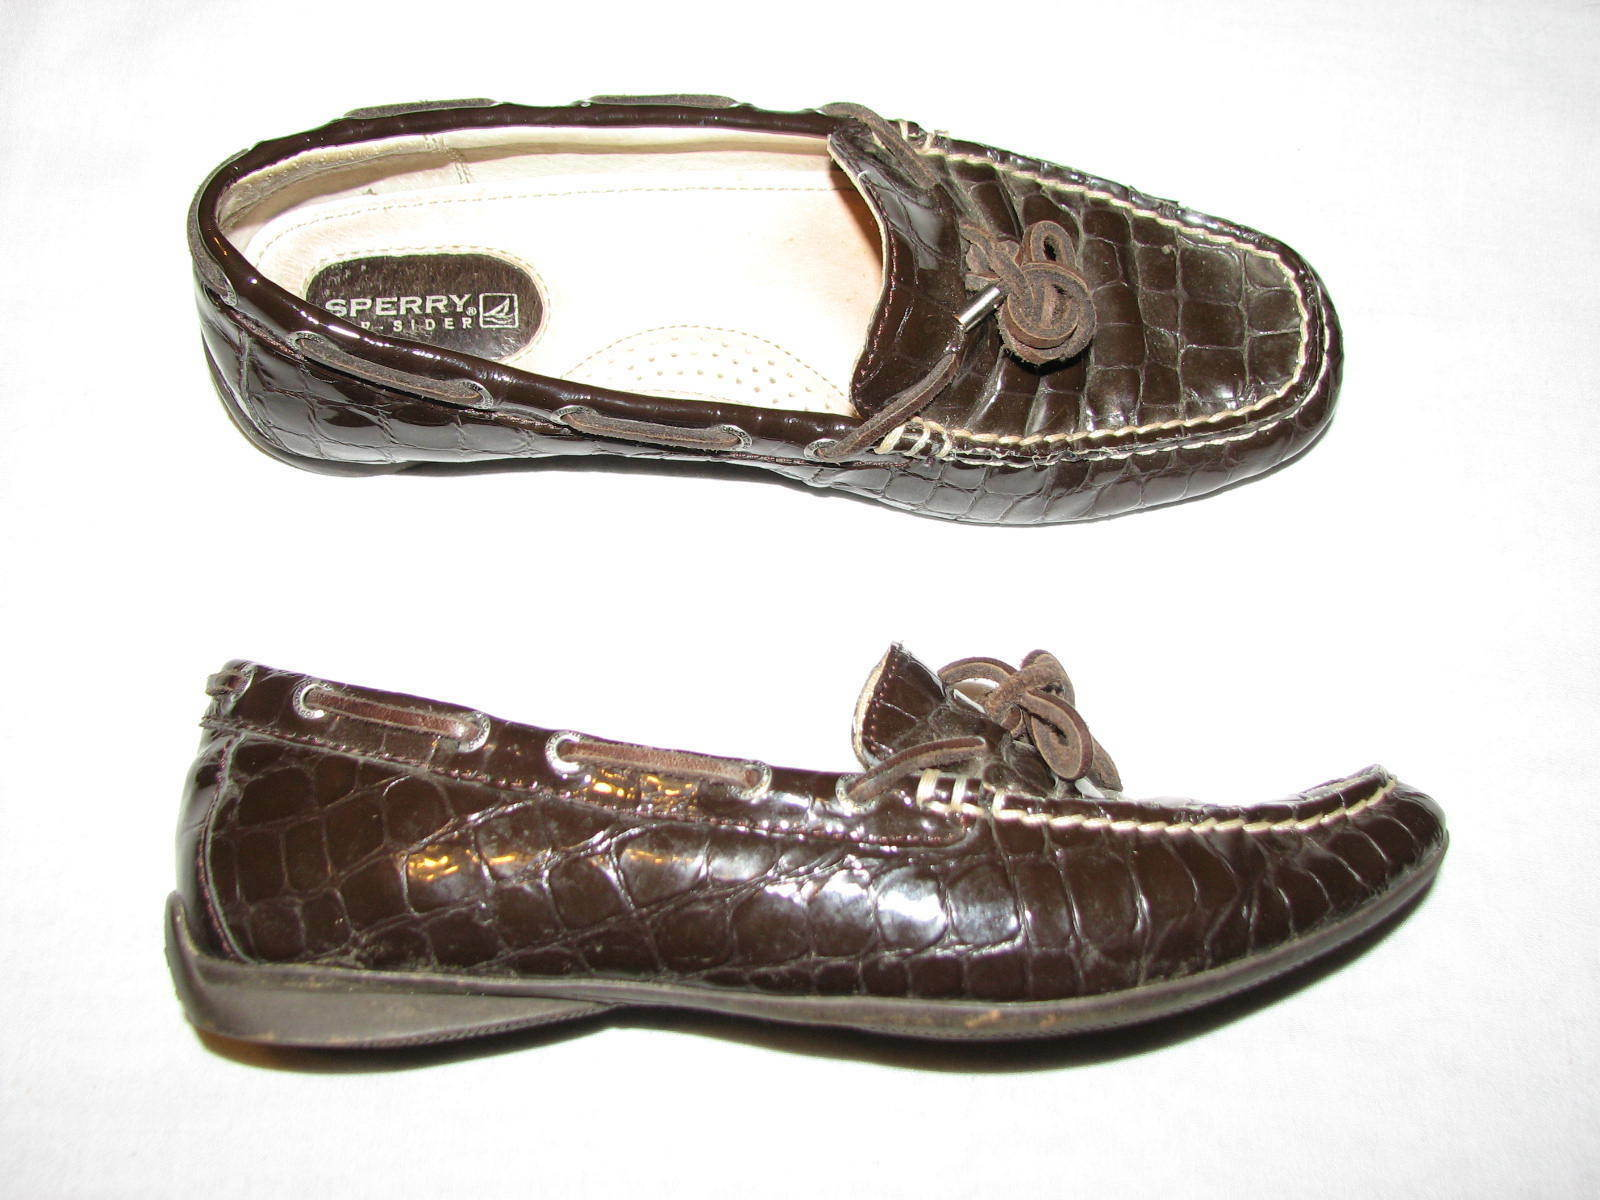 Sperry Top Siders 6 M Brown Patent Leather Boat shoes Flat loafers women Croc 6M - $19.99